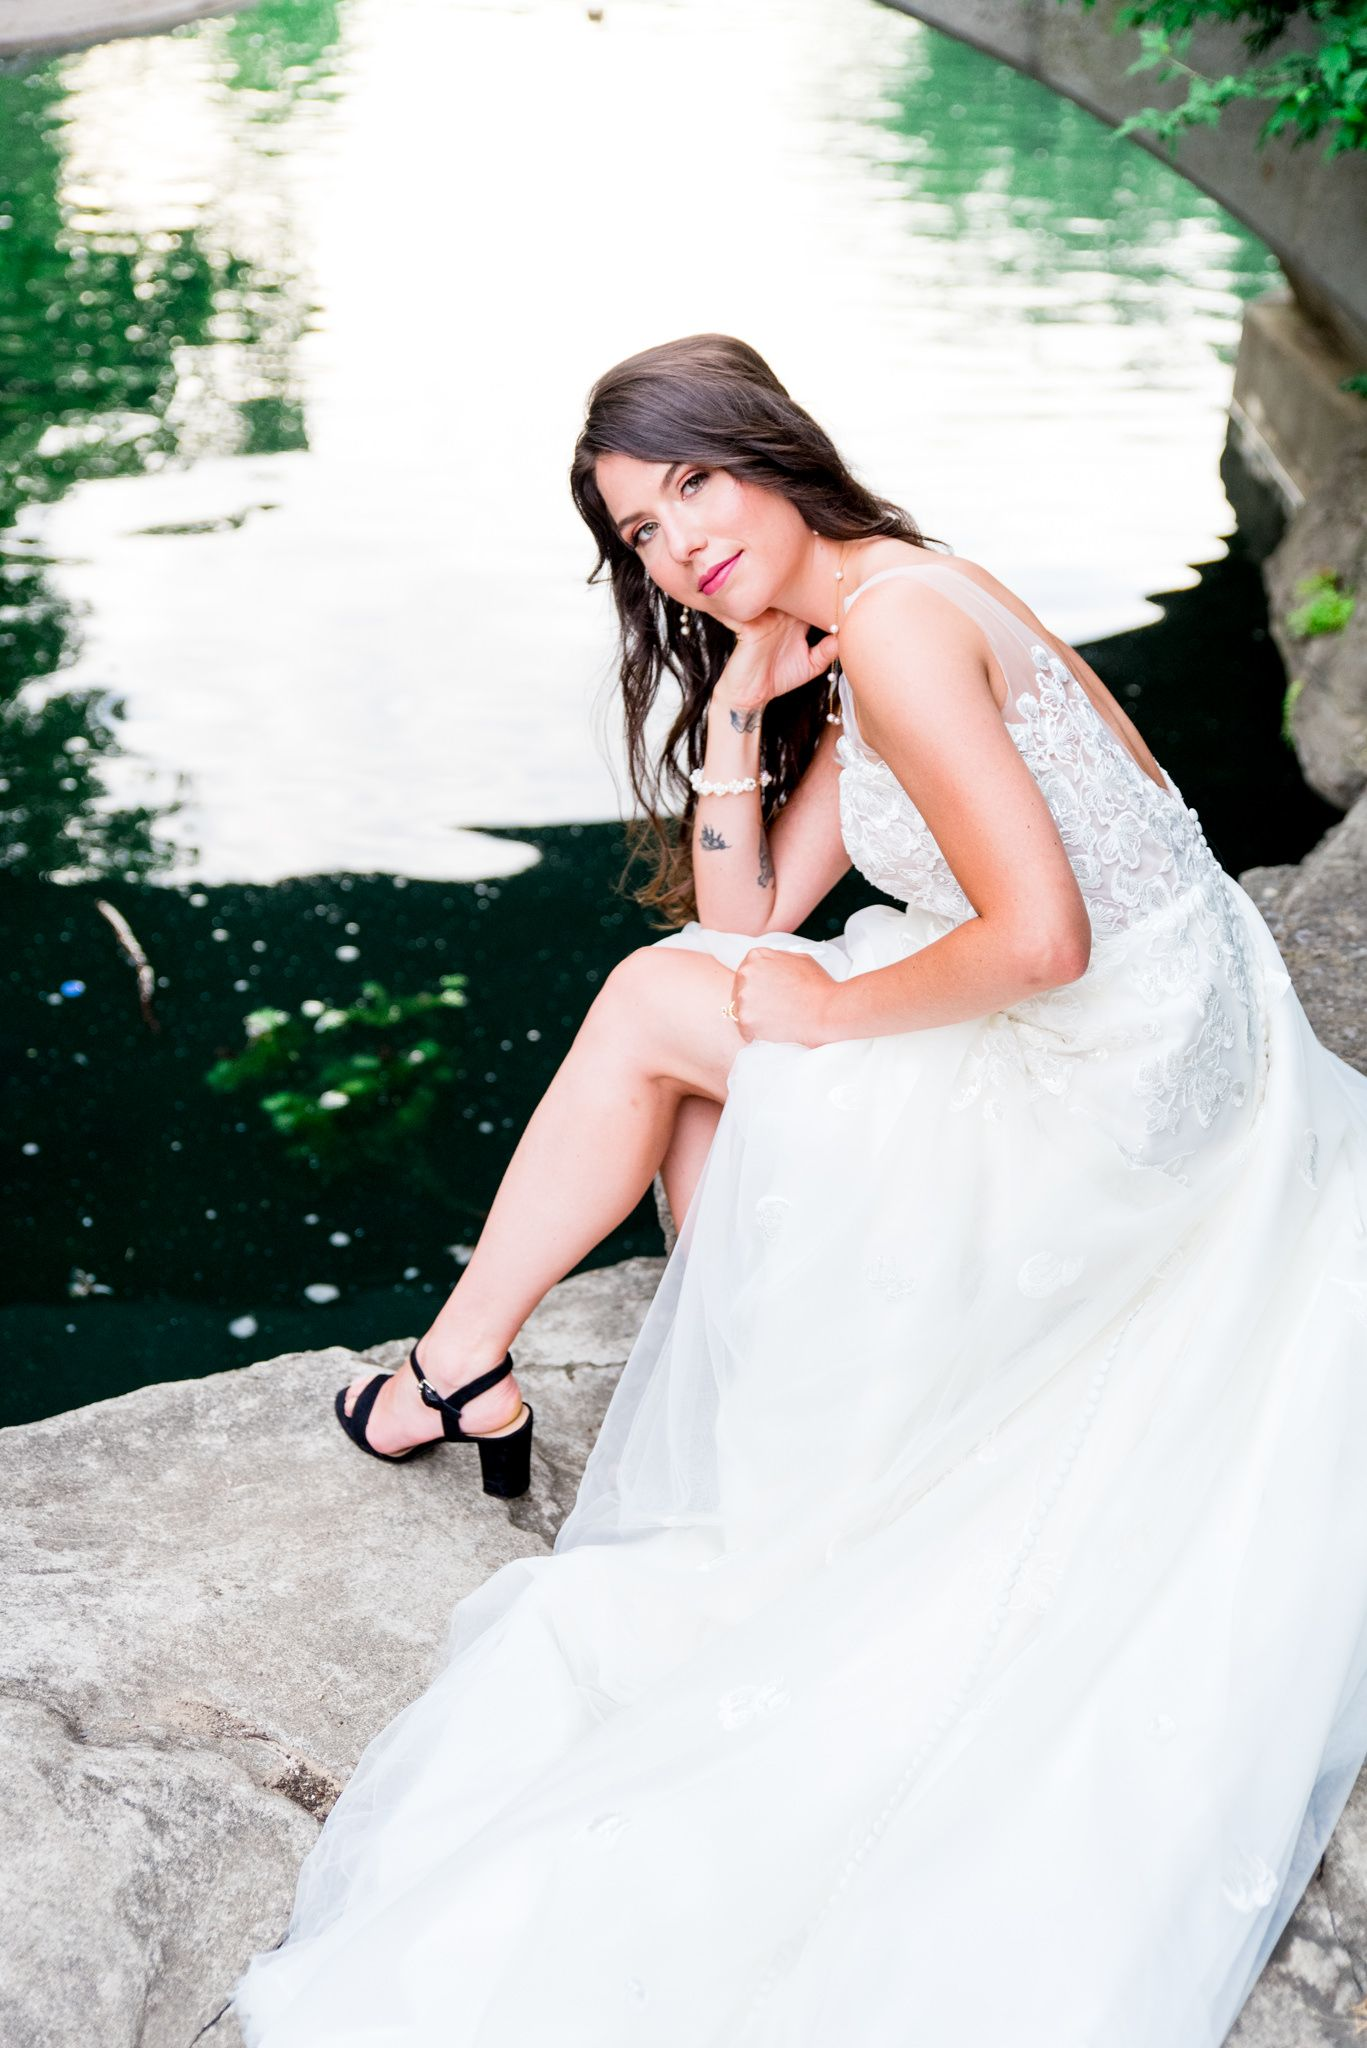 bride in black heels leans onto her knee, wedding dress fanned out showing off her leg